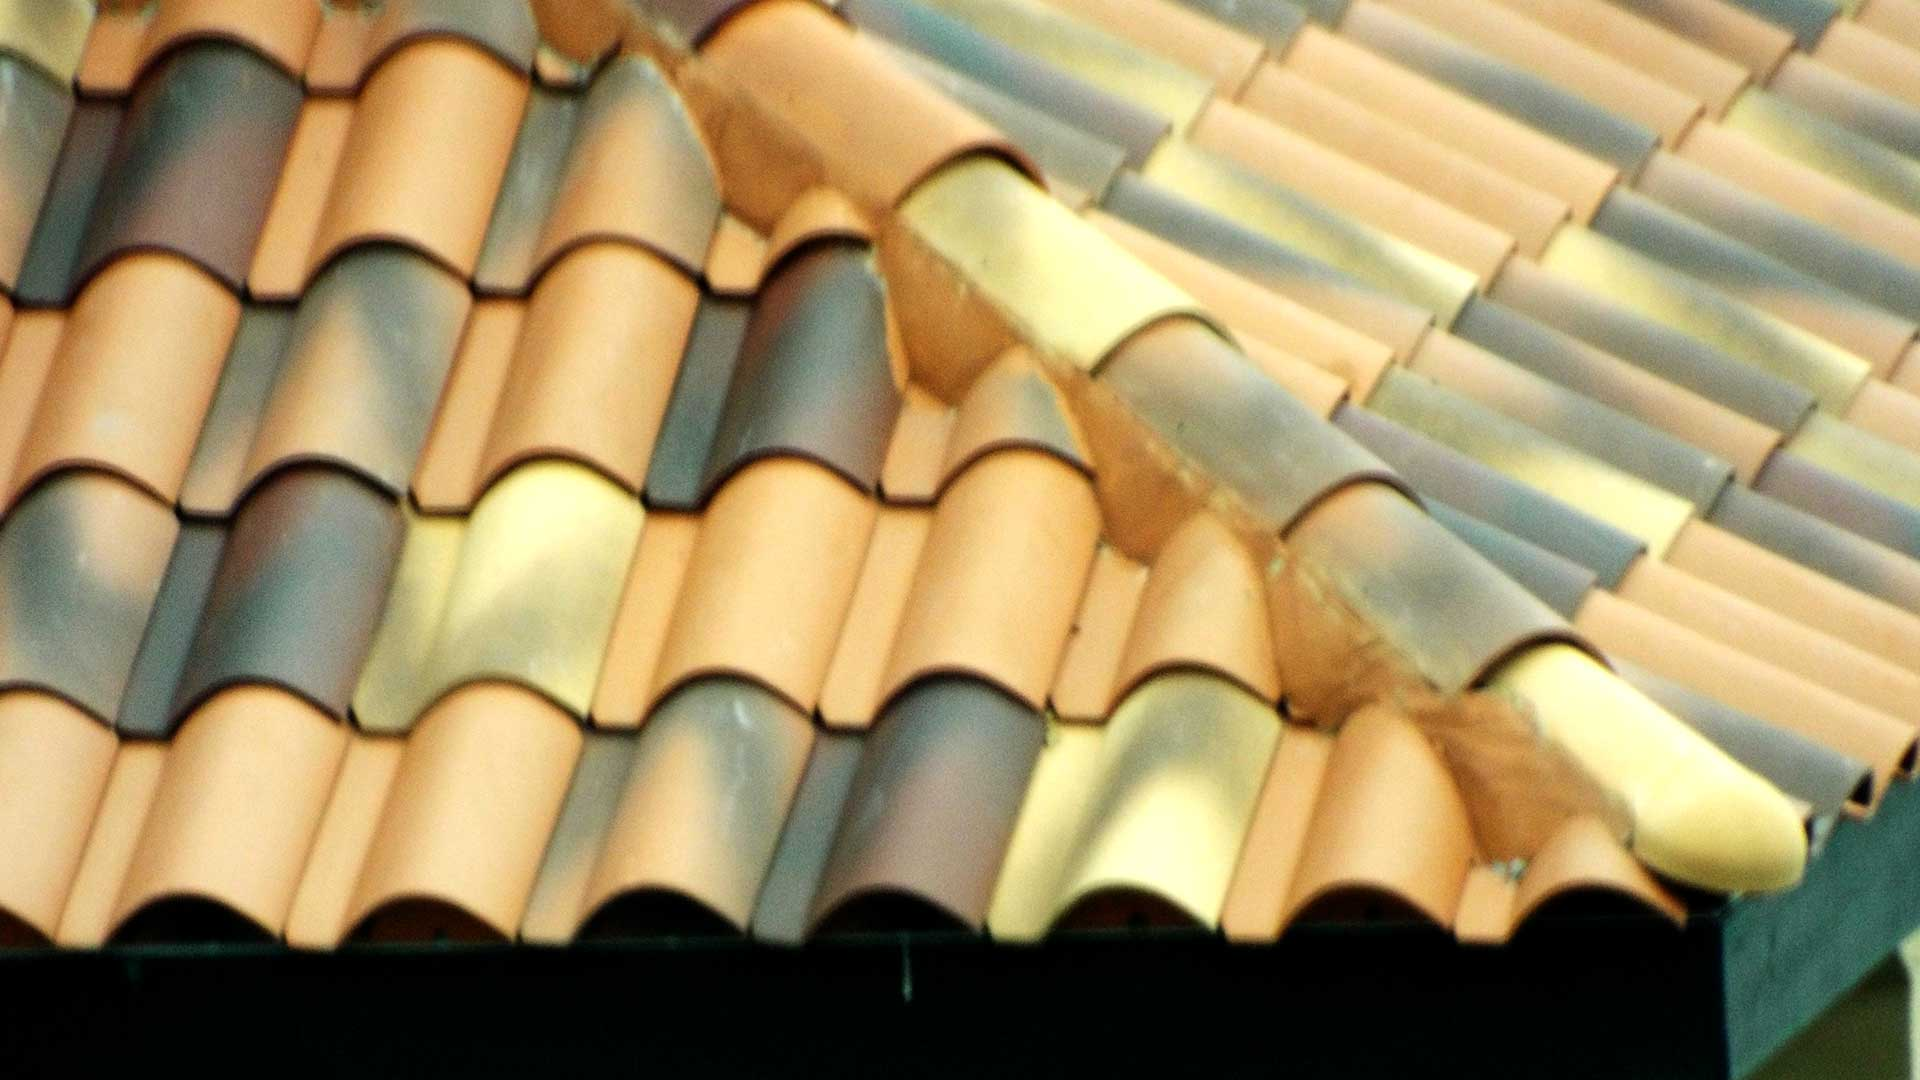 Pace Roofing Pace Residential Roofing Pace Commercial Roofing ...